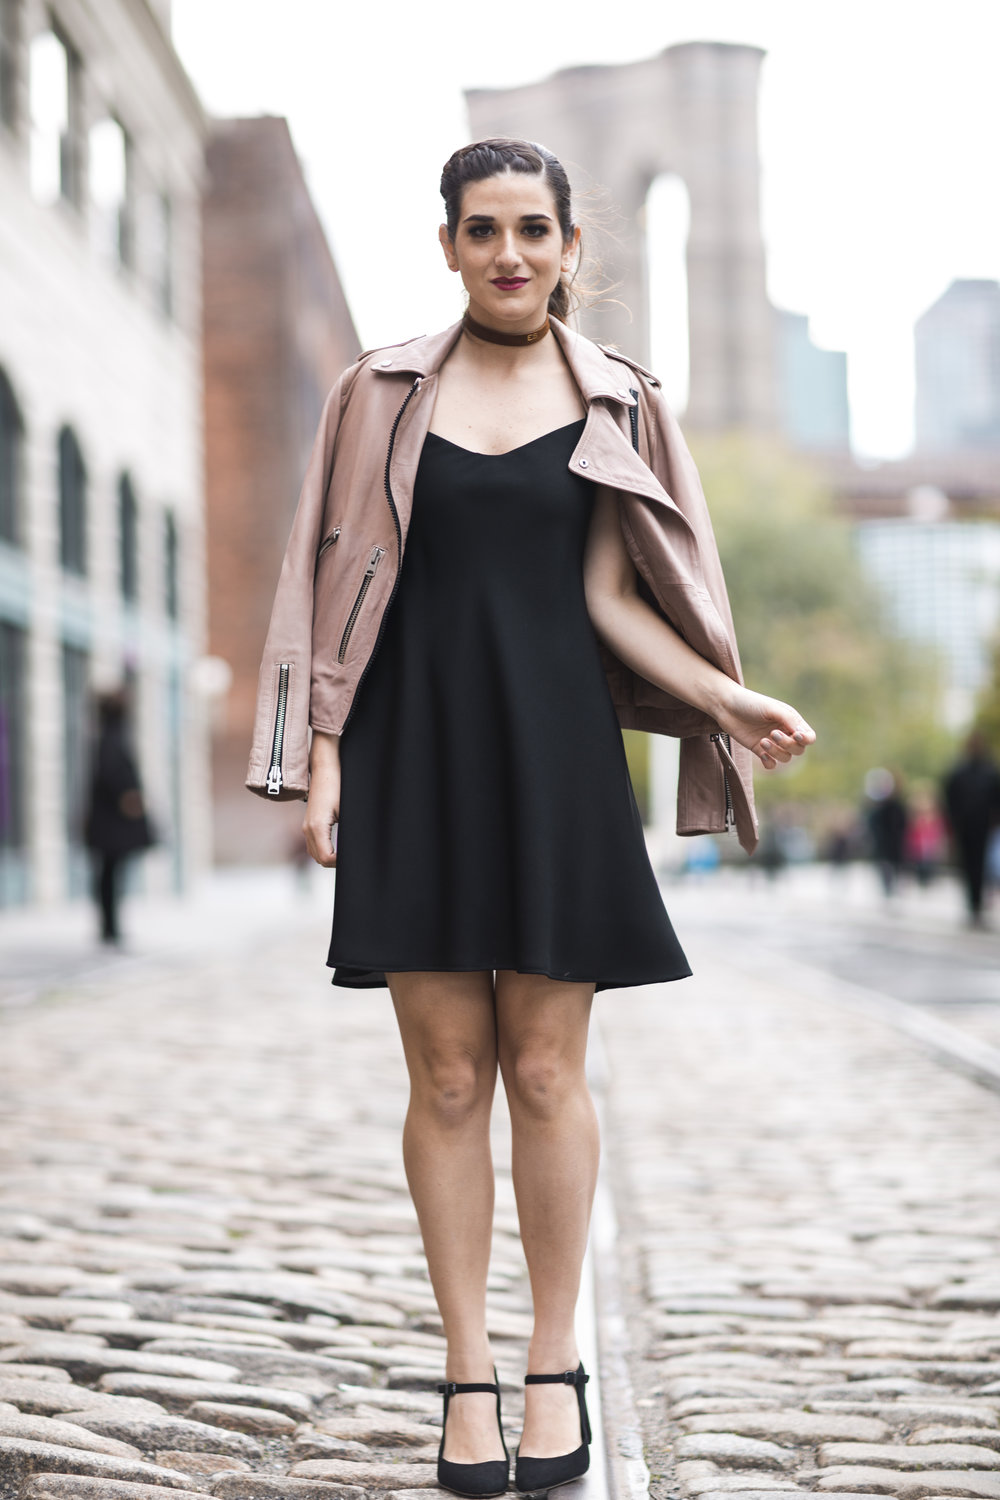 Pink Leather Jacket Erin Dana Choker Louboutins & Love Fashion Blog Esther Santer NYC Street Style Blogger Outfit OOTD Trendy All Saints Hair Inspo Fall Look Via Spiga Black Shoes Bloomingdales Slip Dress Model Girl Women Pretty Dumbo Shop Accessories.jpg